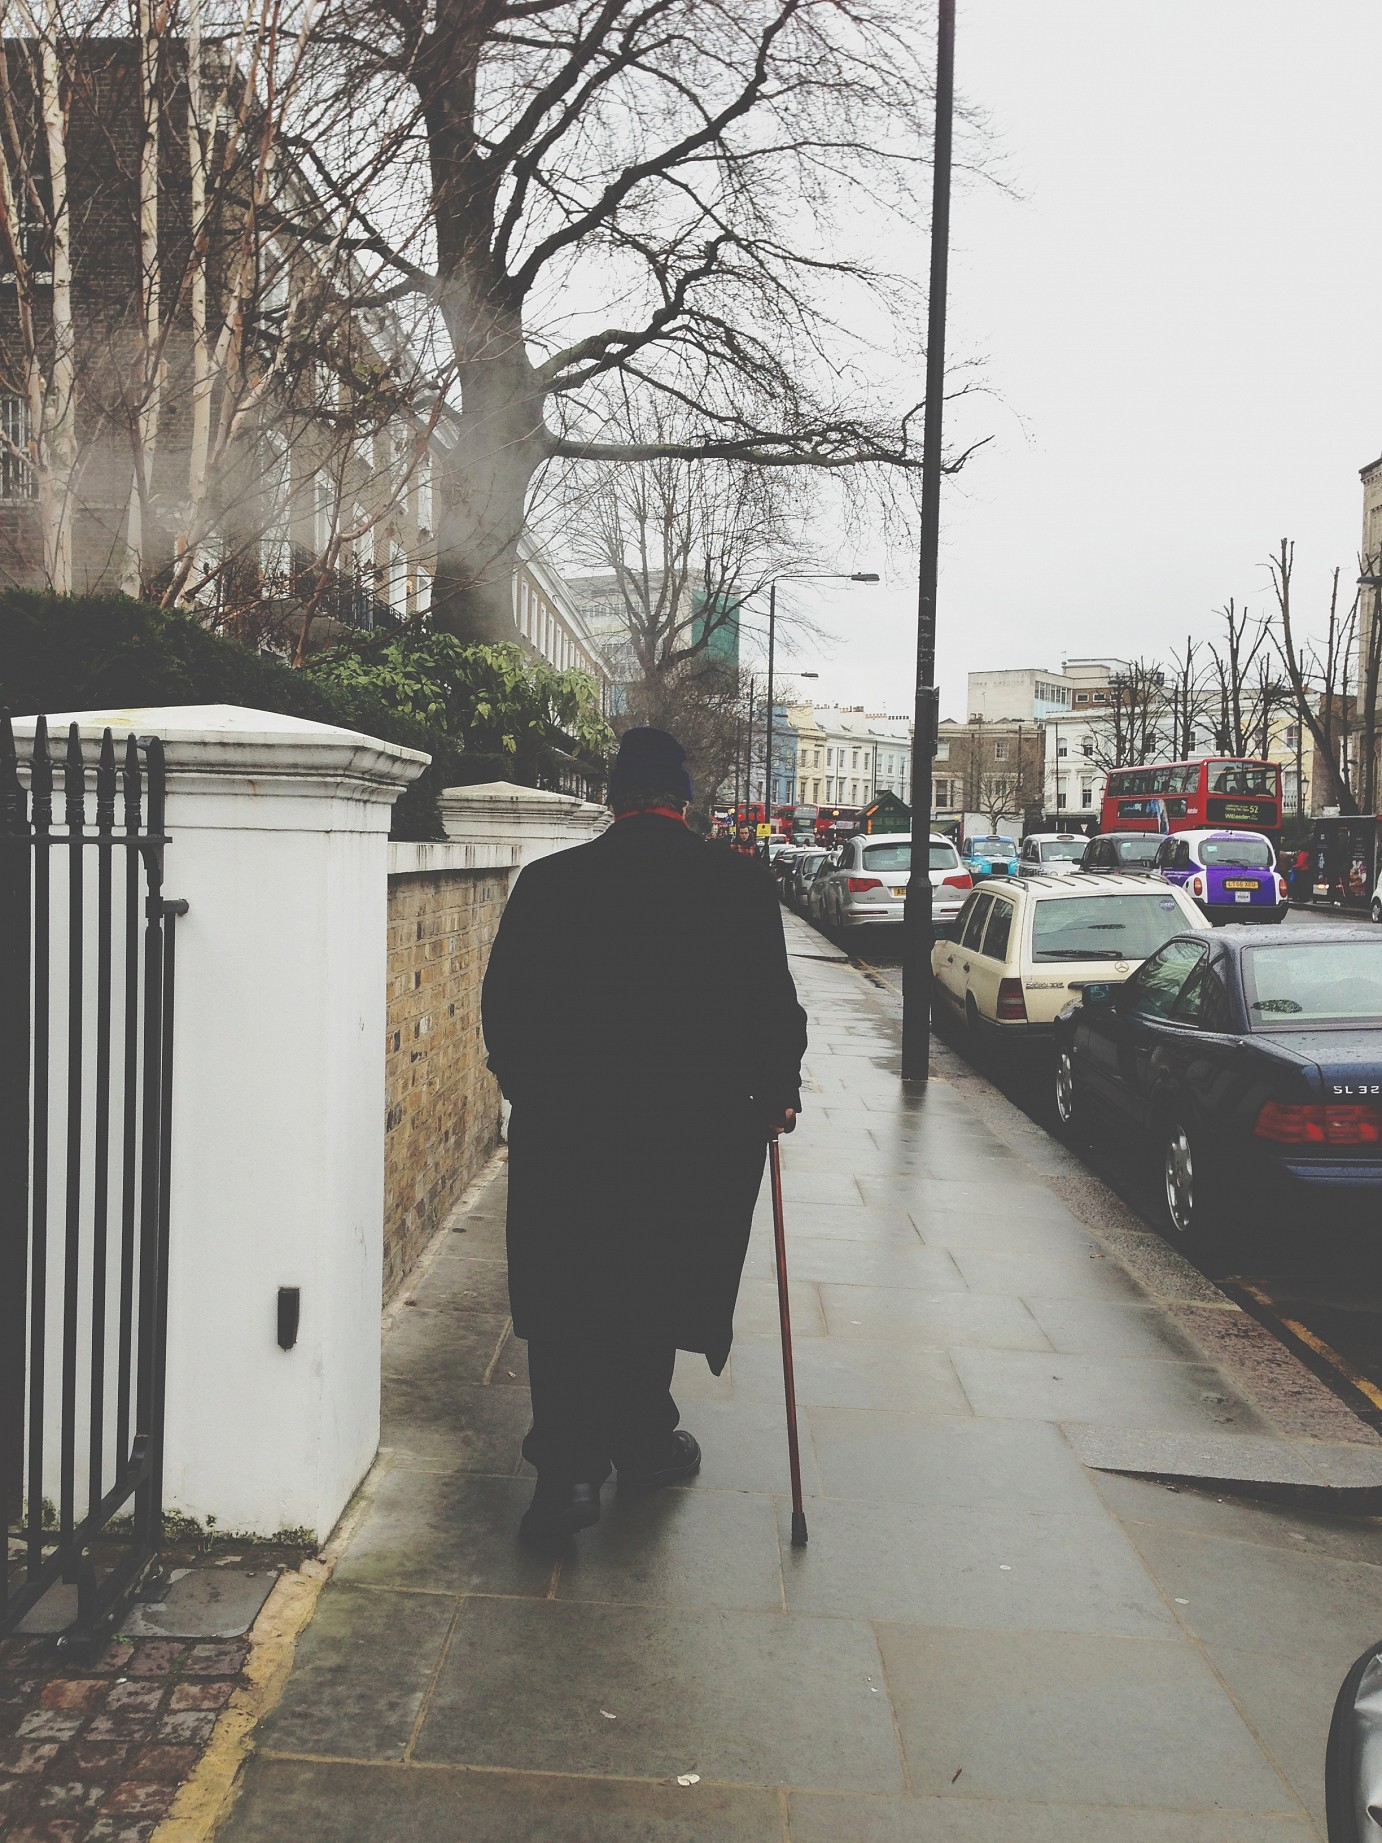 veronica-armstrong-london-rainy-saturday